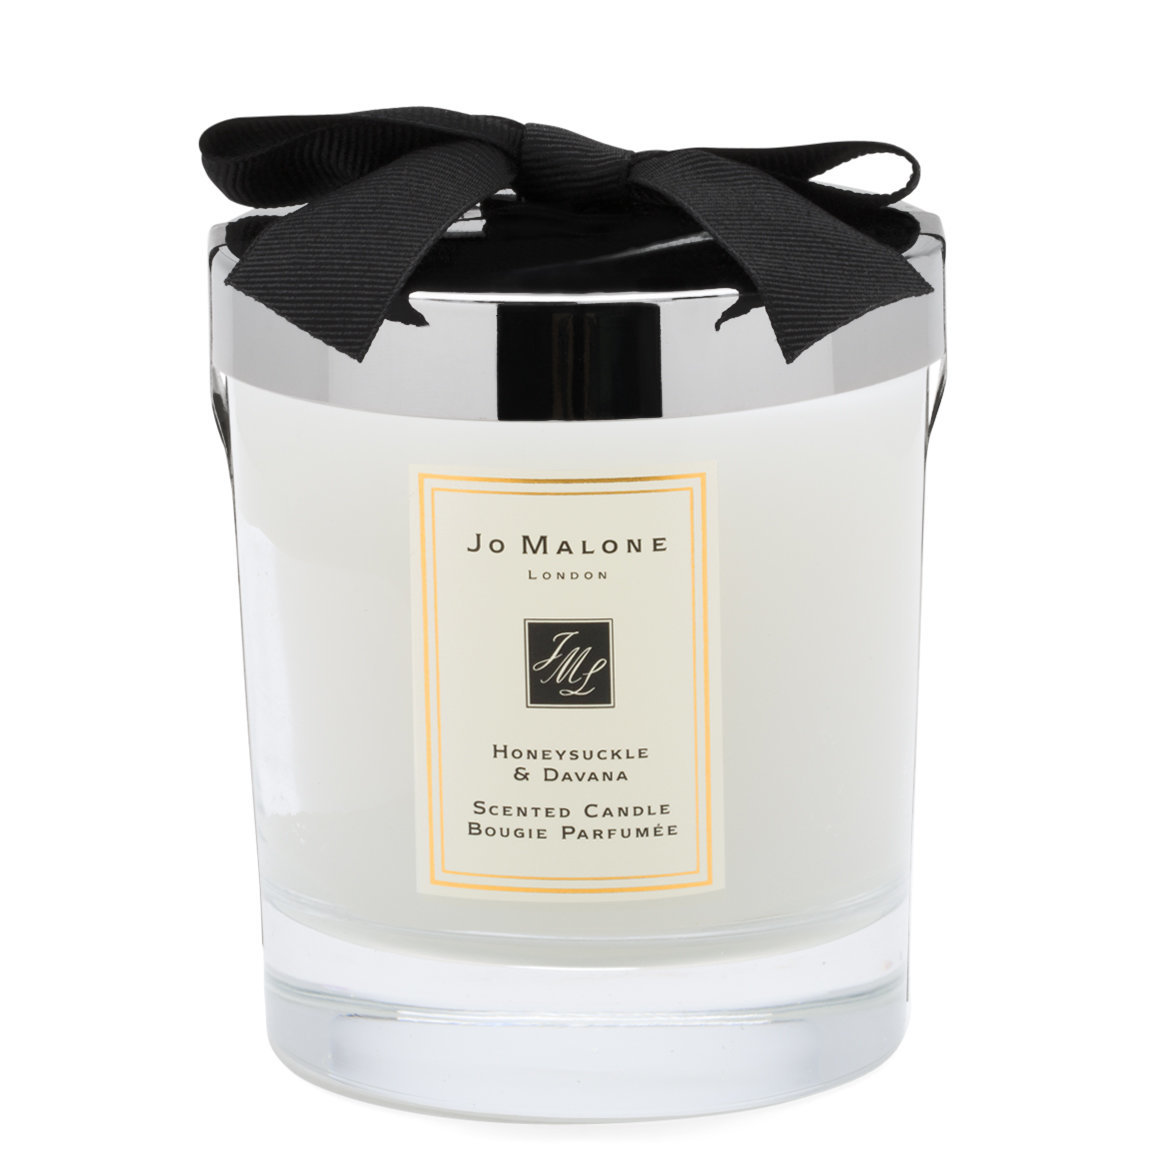 Jo Malone London Honeysuckle & Davana Cologne Scented Candle - 200g Home product smear.